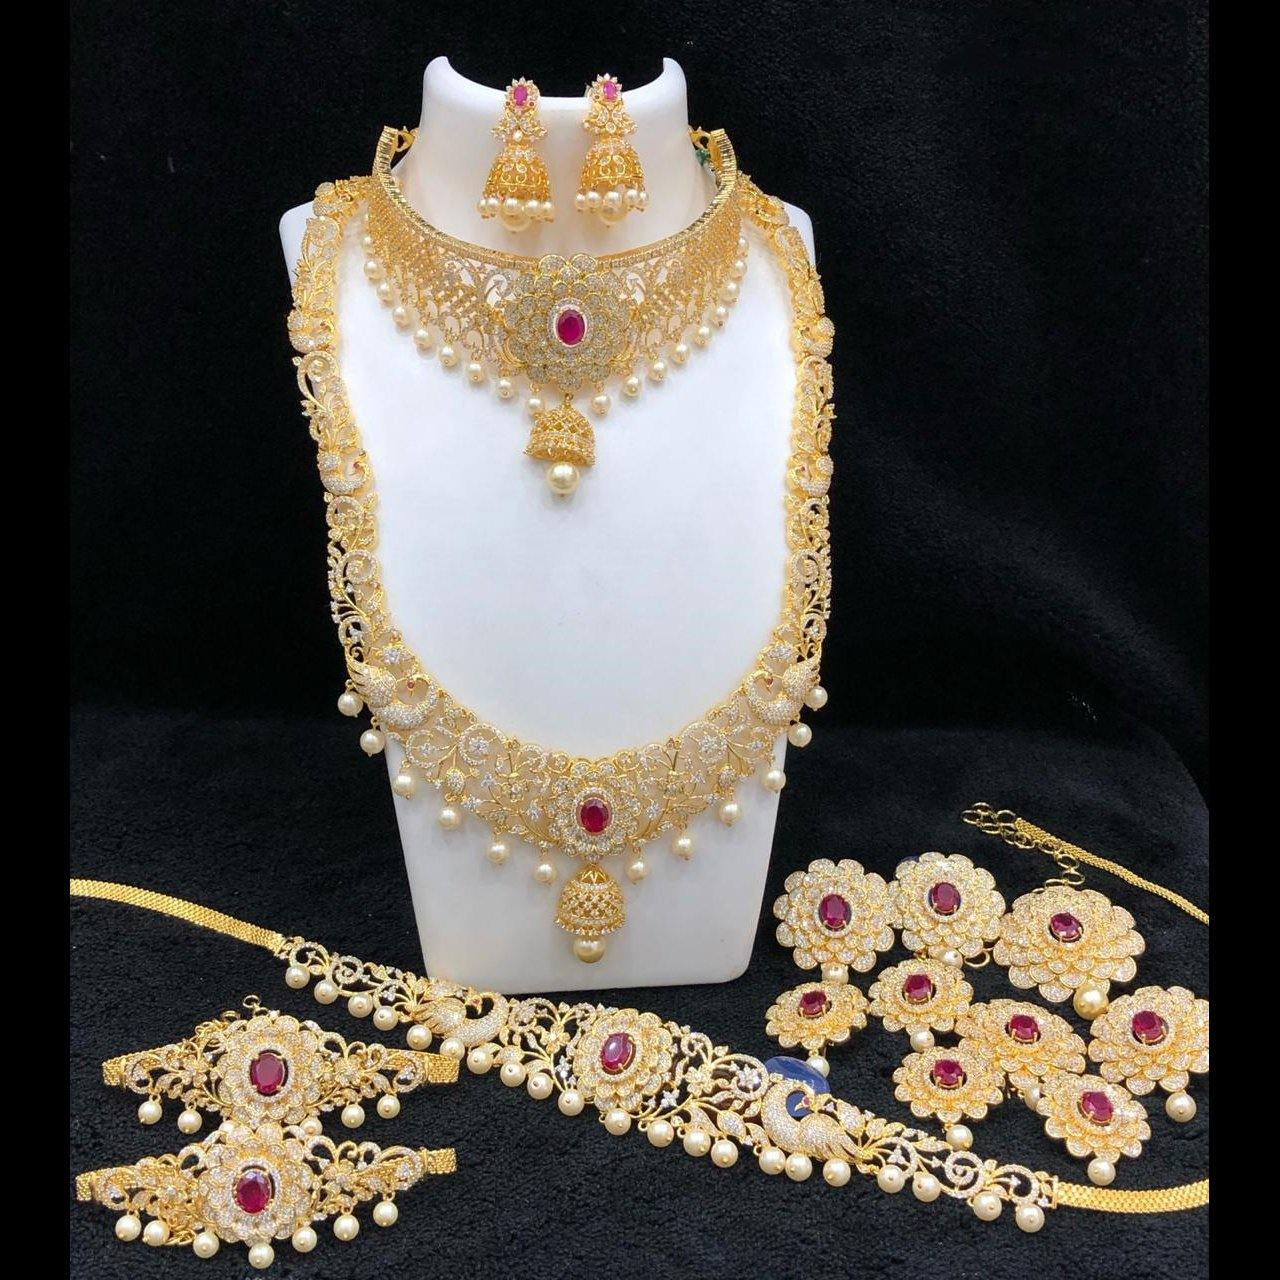 Bridal set with floral patterns and semi-precious stone